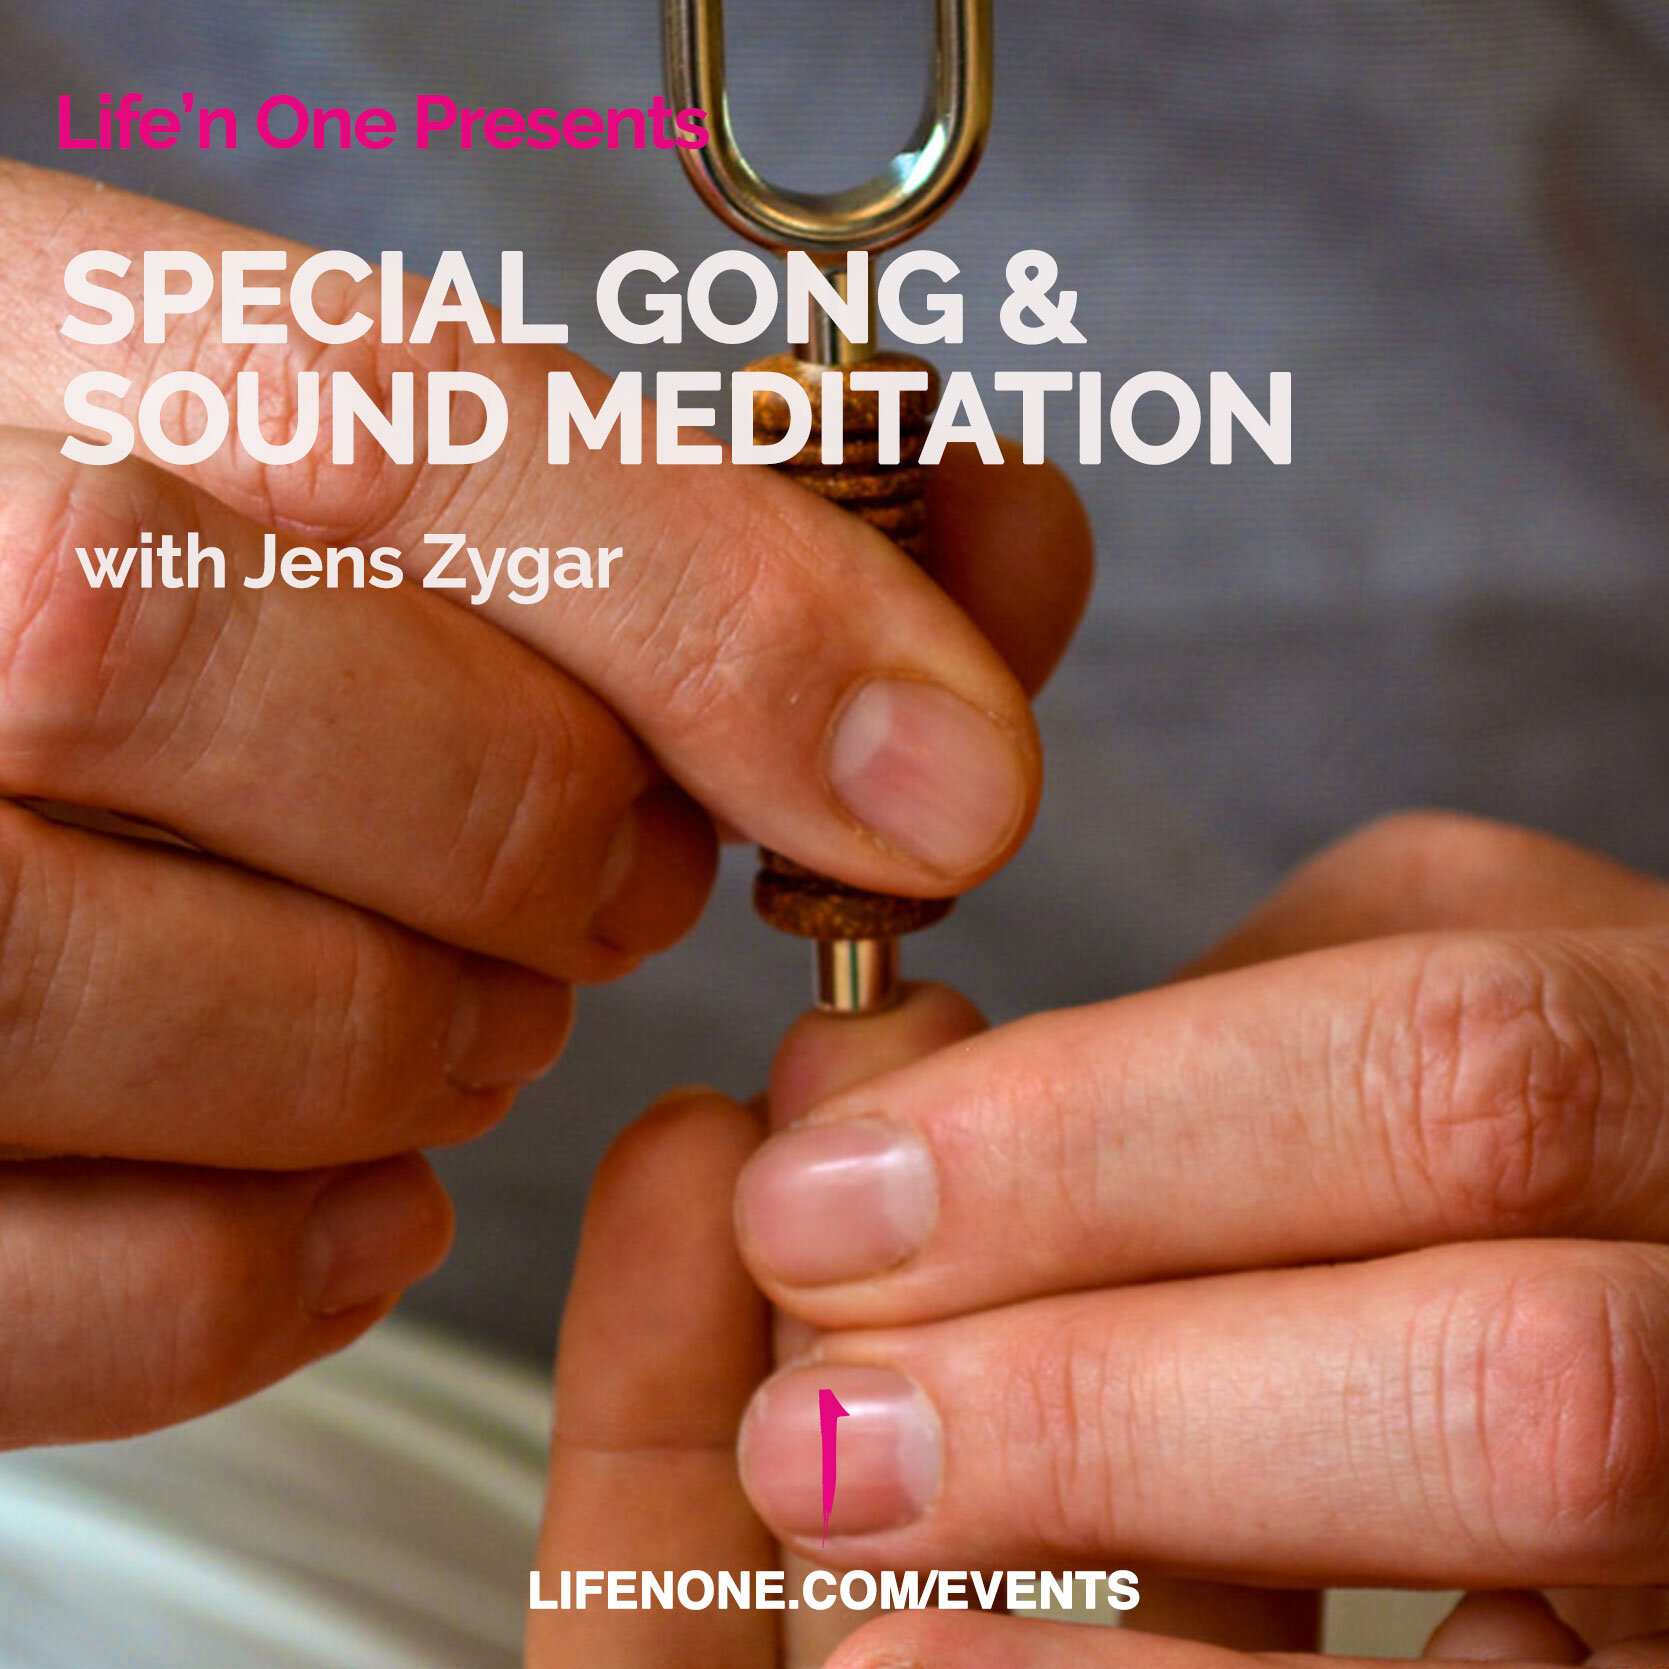 191030-special-gong-&-sound-meditation-with-jens.jpg